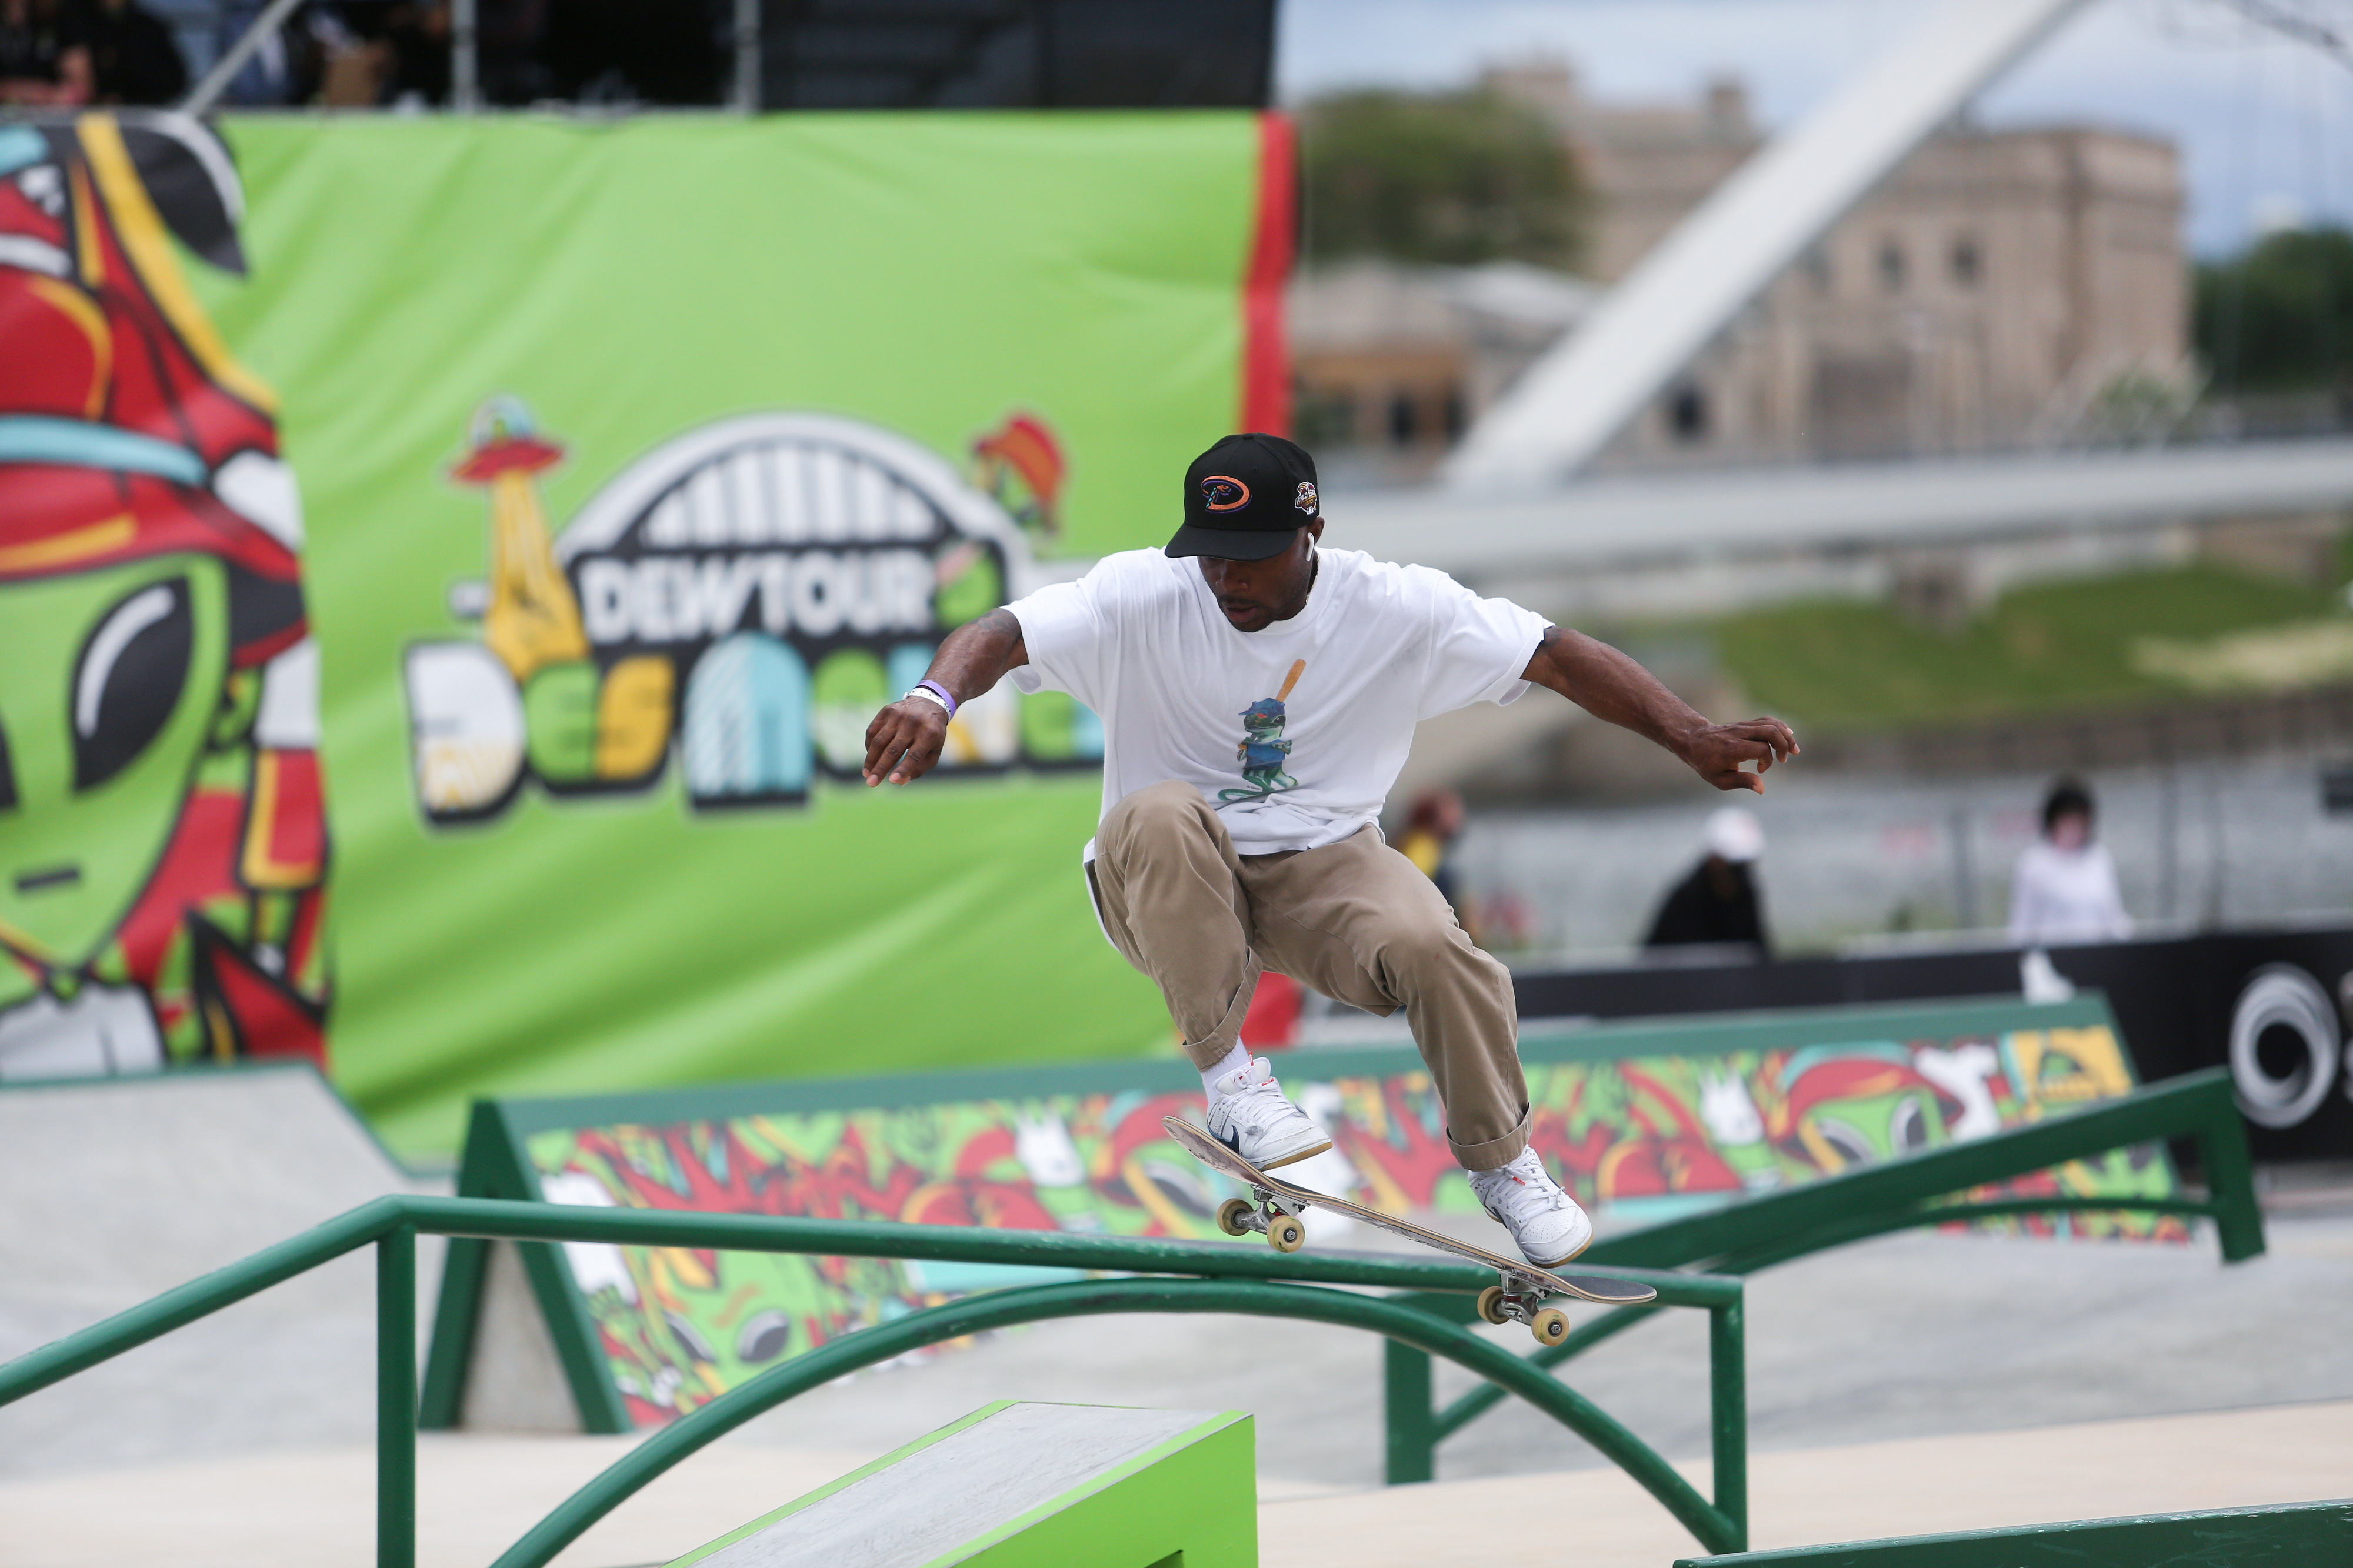 Skateboarder Dashawn Jordan (U.S.) practices during a stop on the Dew Tour, which showcases athletes before skateboarding makes its Olympic debut in Tokyo, at Lauridsen Park in Des Moines, Iowa, U.S., May 20, 2021.  REUTERS/Rachel Mummey